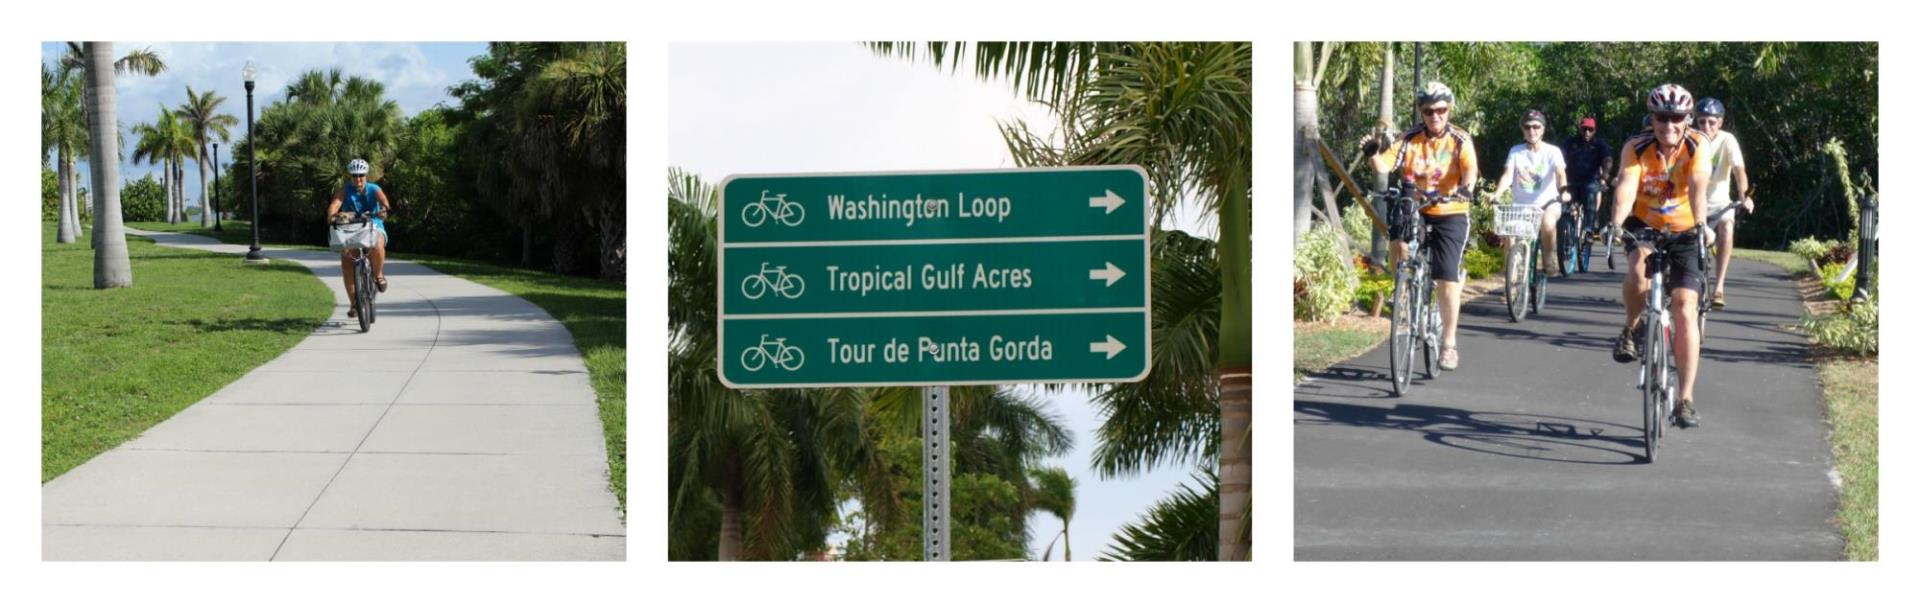 collage of bikers and biking trail signs